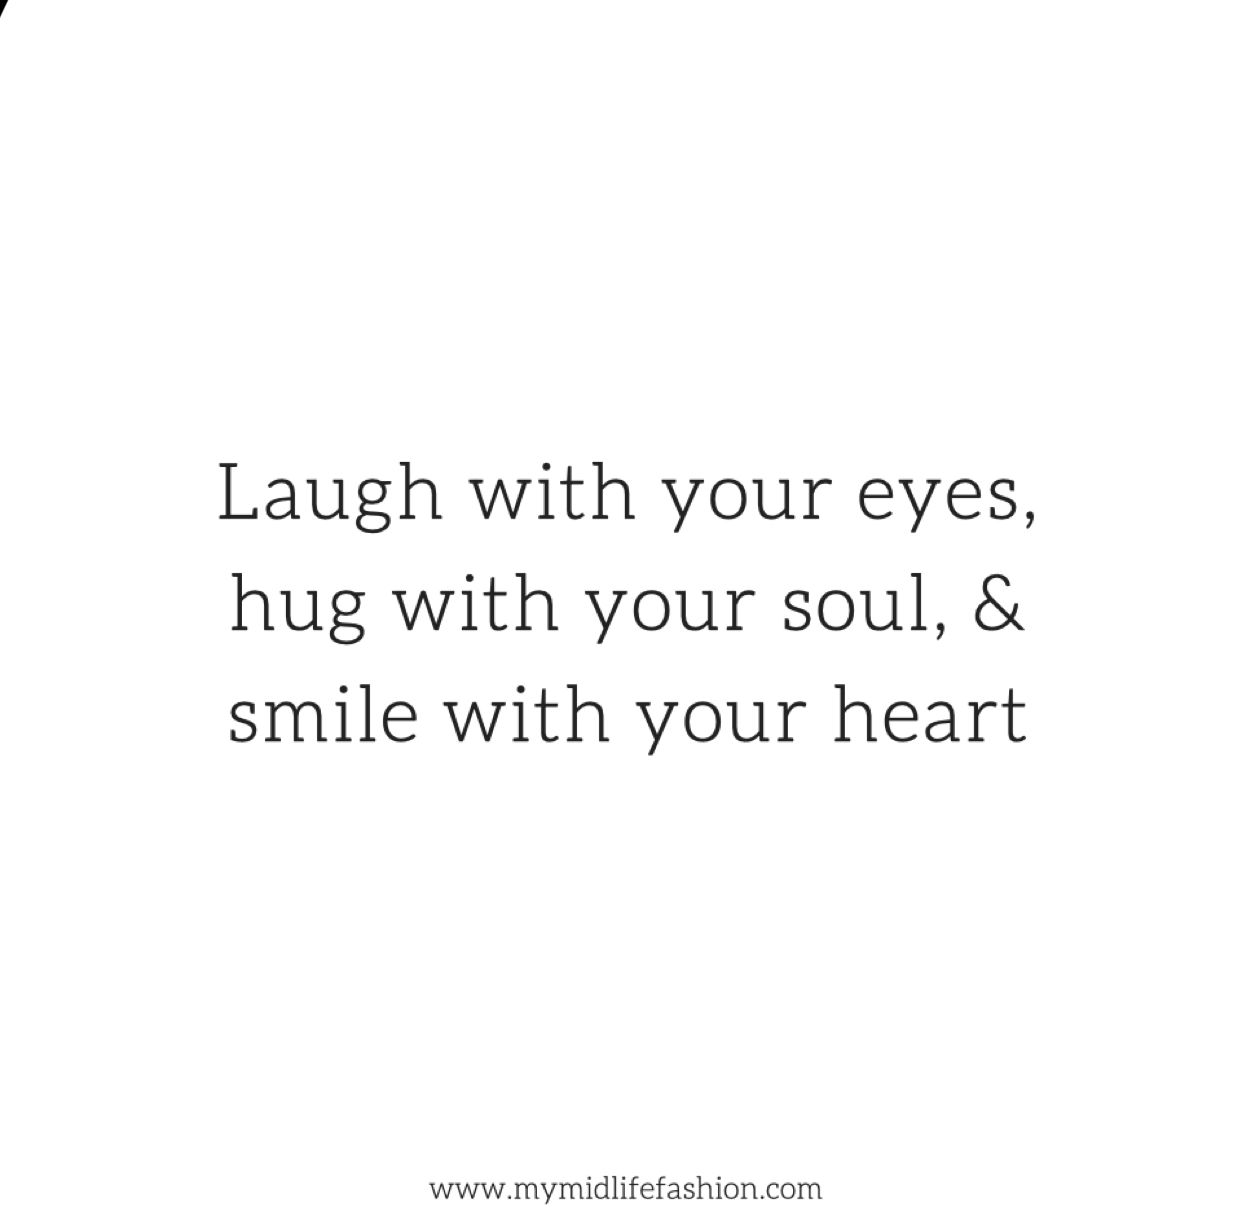 My Midlife Fashion Laughing Quotes Smile Quotes Cute Smile Quotes